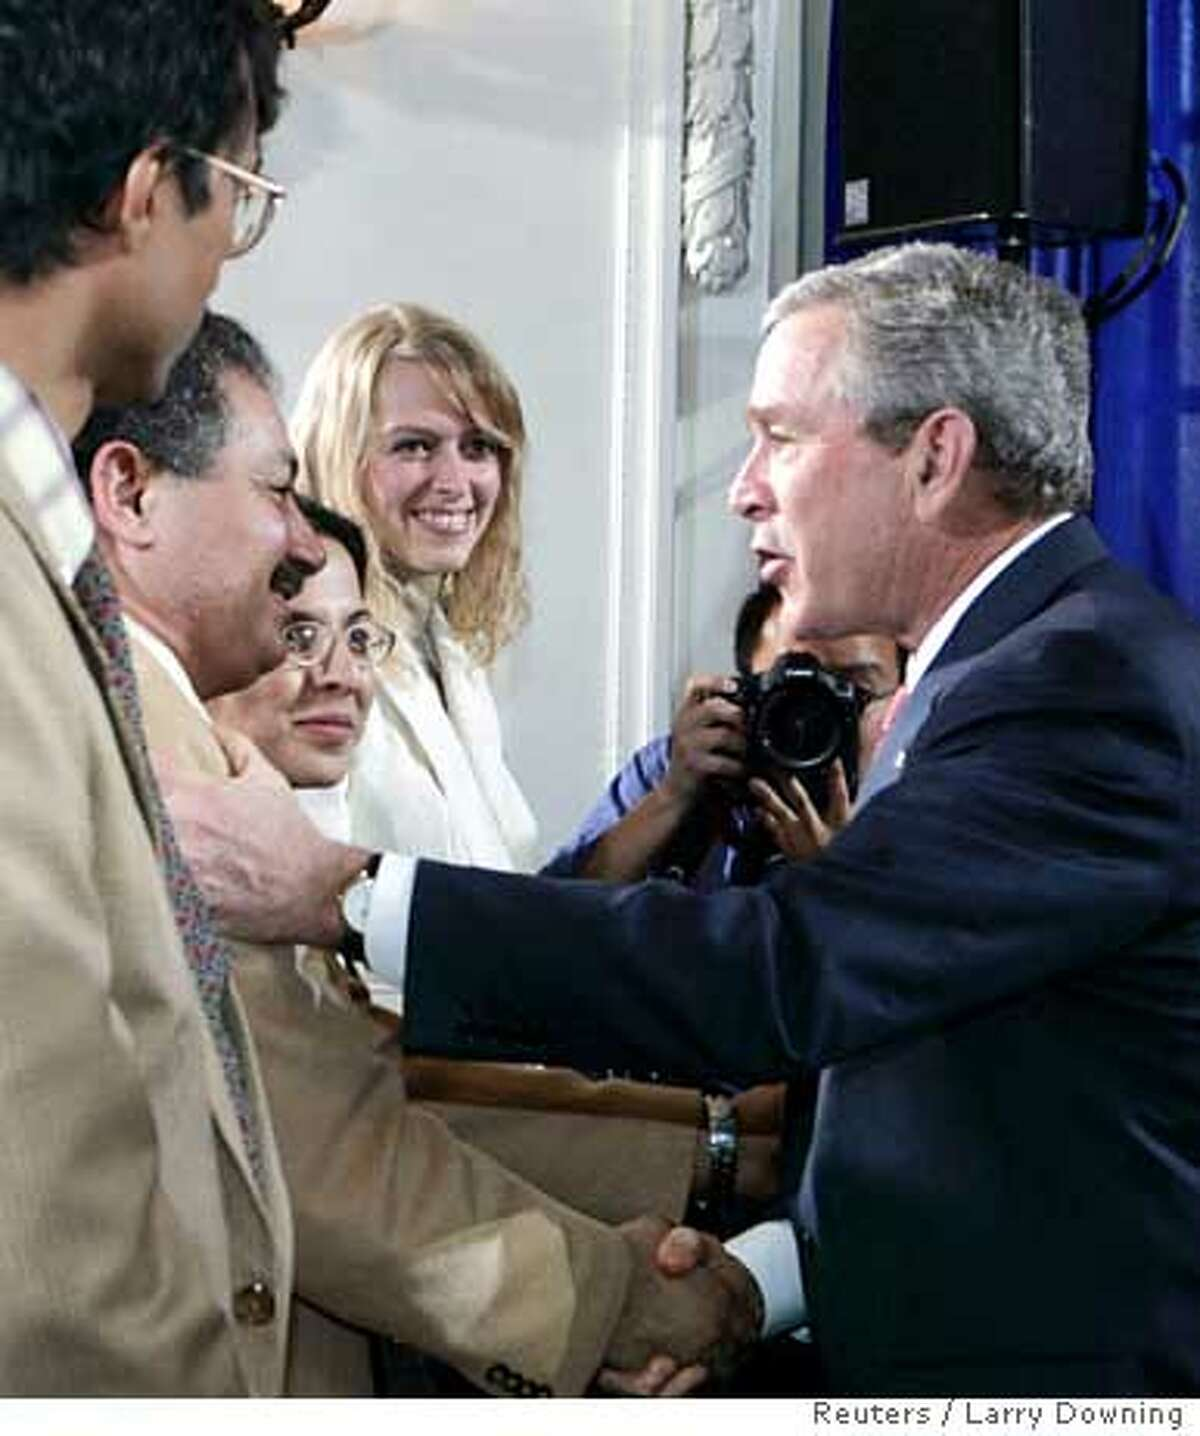 U.S. President George W. Bush (R) greets newly sworn-in U.S. citizens at the swearing-in ceremony of immigrants as U.S. citizens during a U.S. Naturalization Ceremony at the Daughters of the American Revolution Administration Building in Washington March 27, 2006. REUTERS/Larry Downing